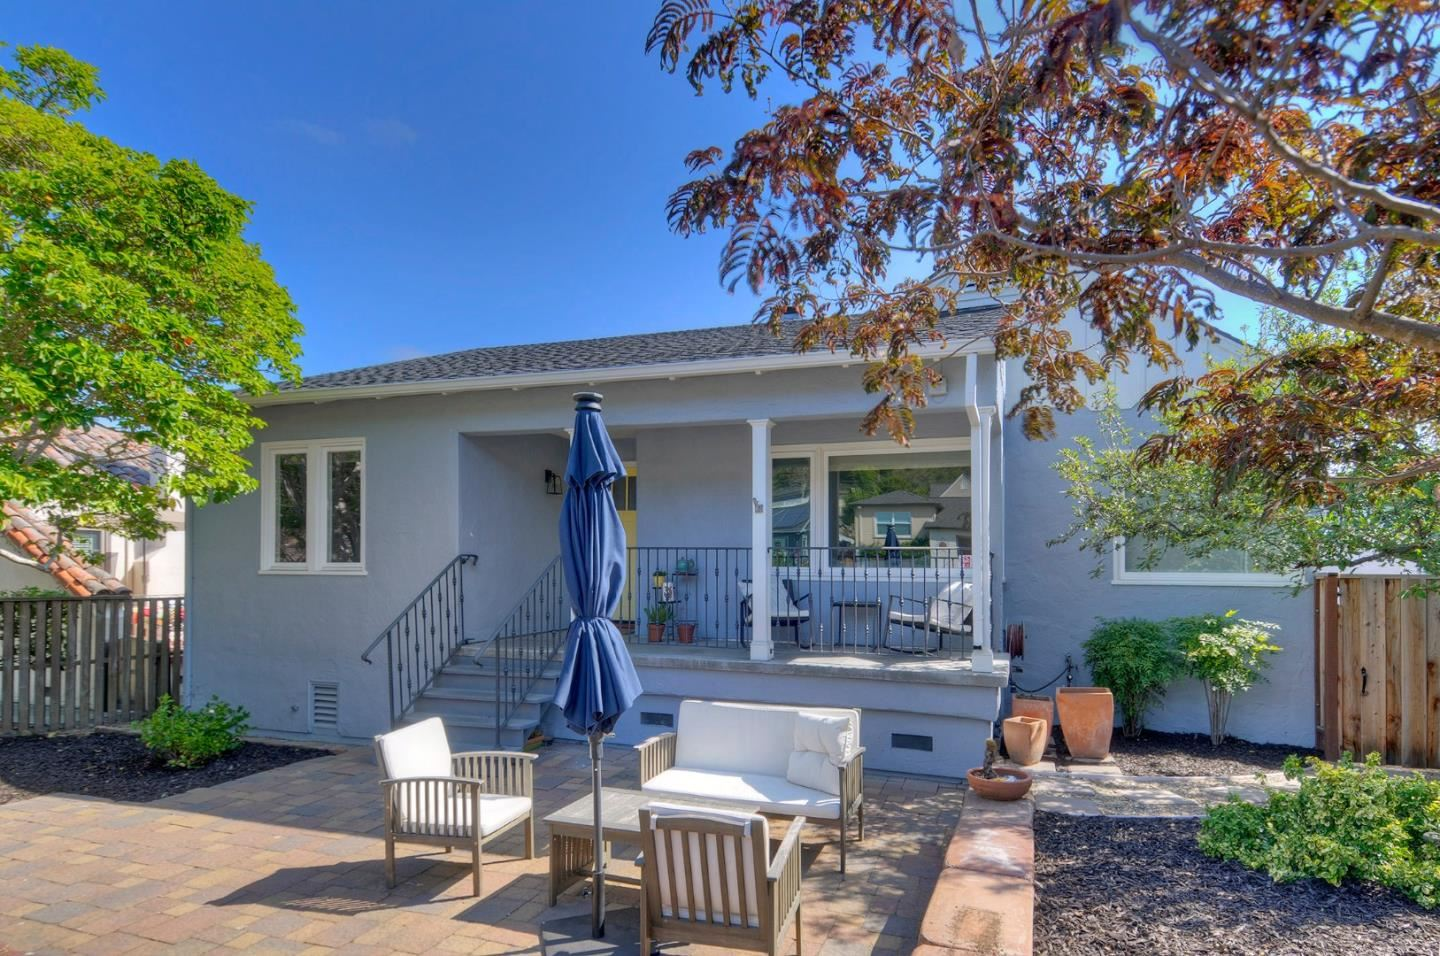 Photo for 1349 Sixth AVE, BELMONT, CA 94002 (MLS # ML81807076)